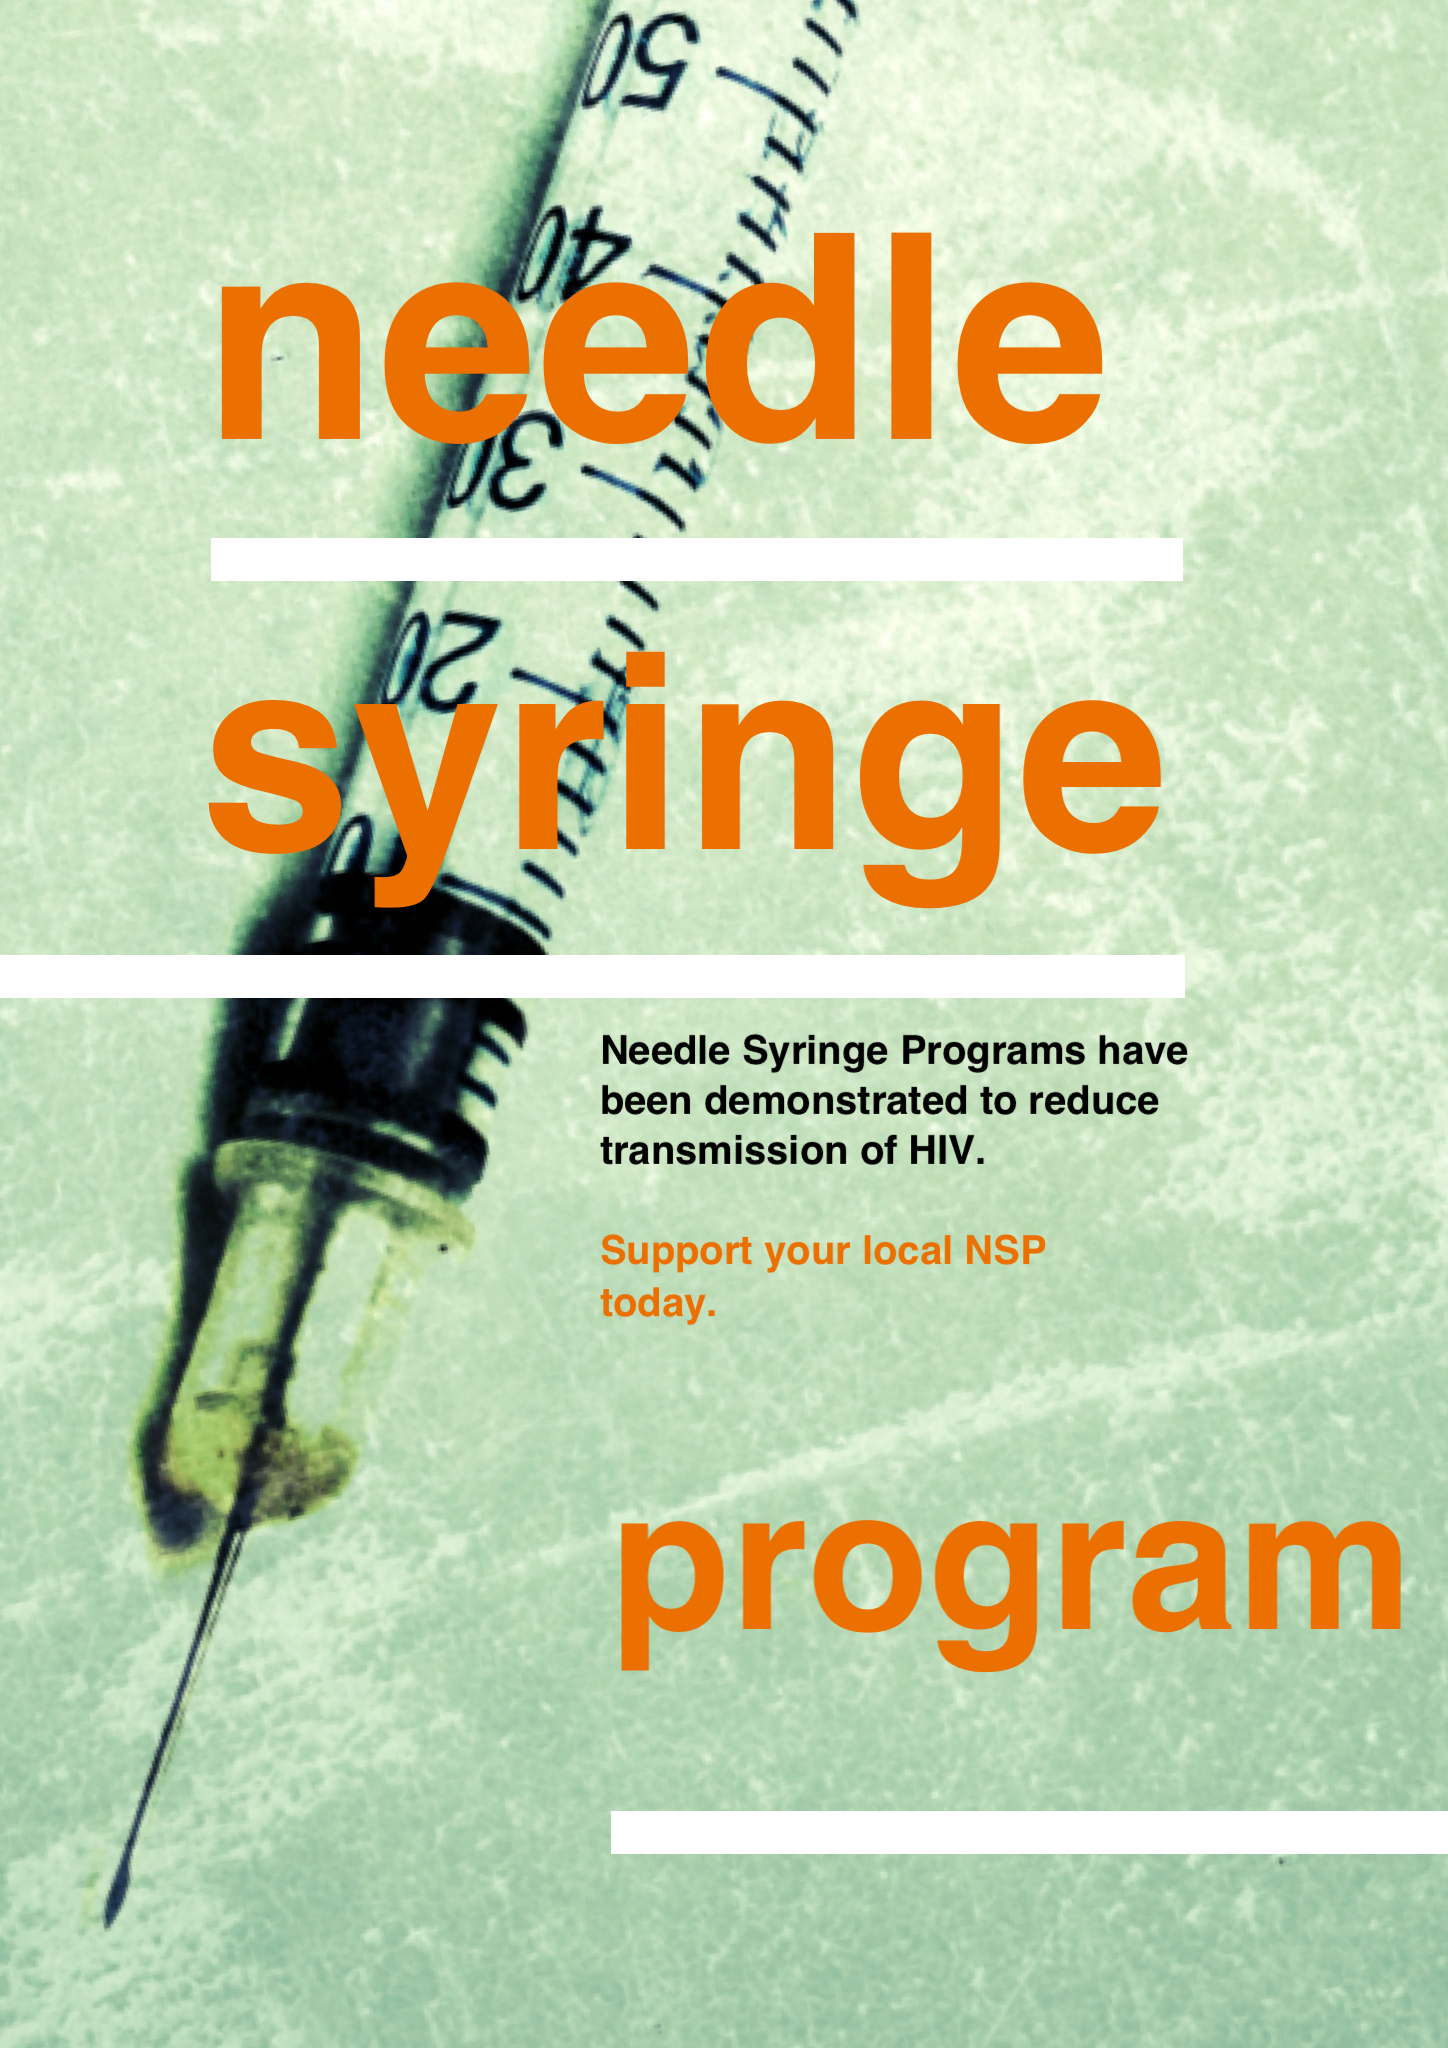 7 Facts About Needle Syringe Programs Nsp In Australia